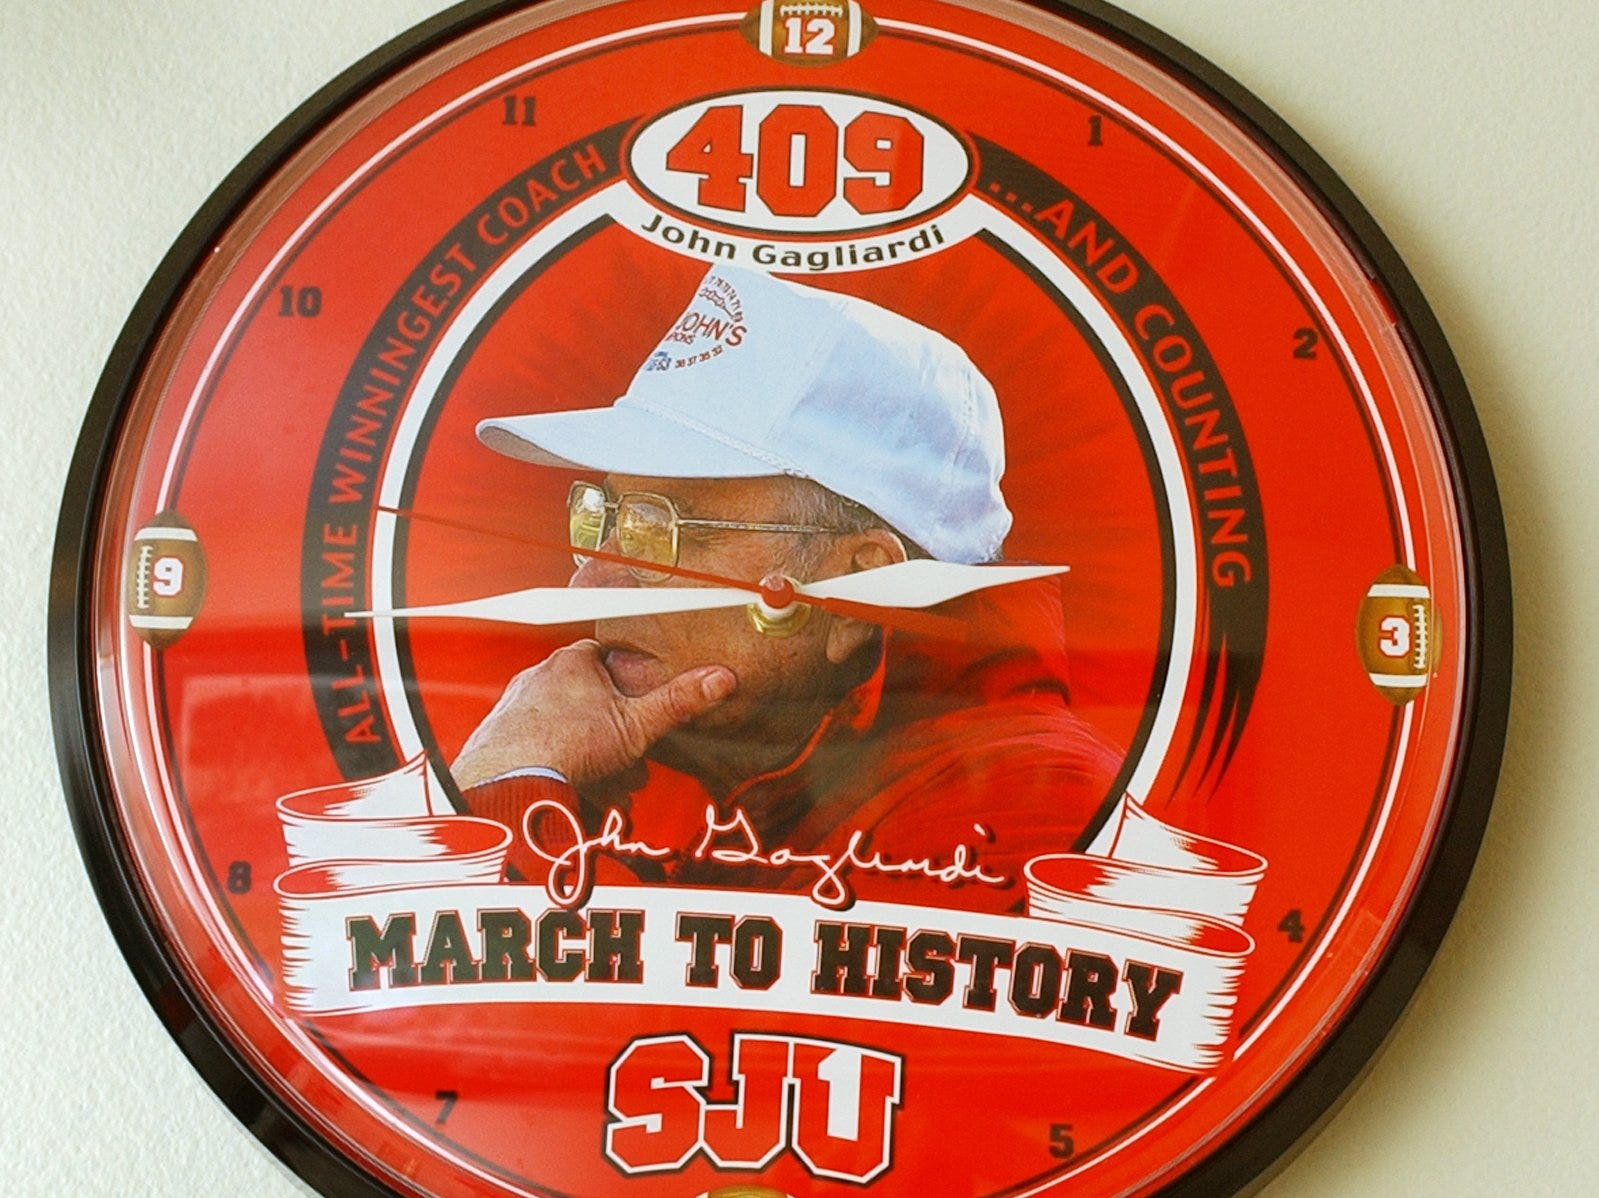 A clock commemorates John Gagliardi's 409th win, the victory making him history's most successful college football coach.